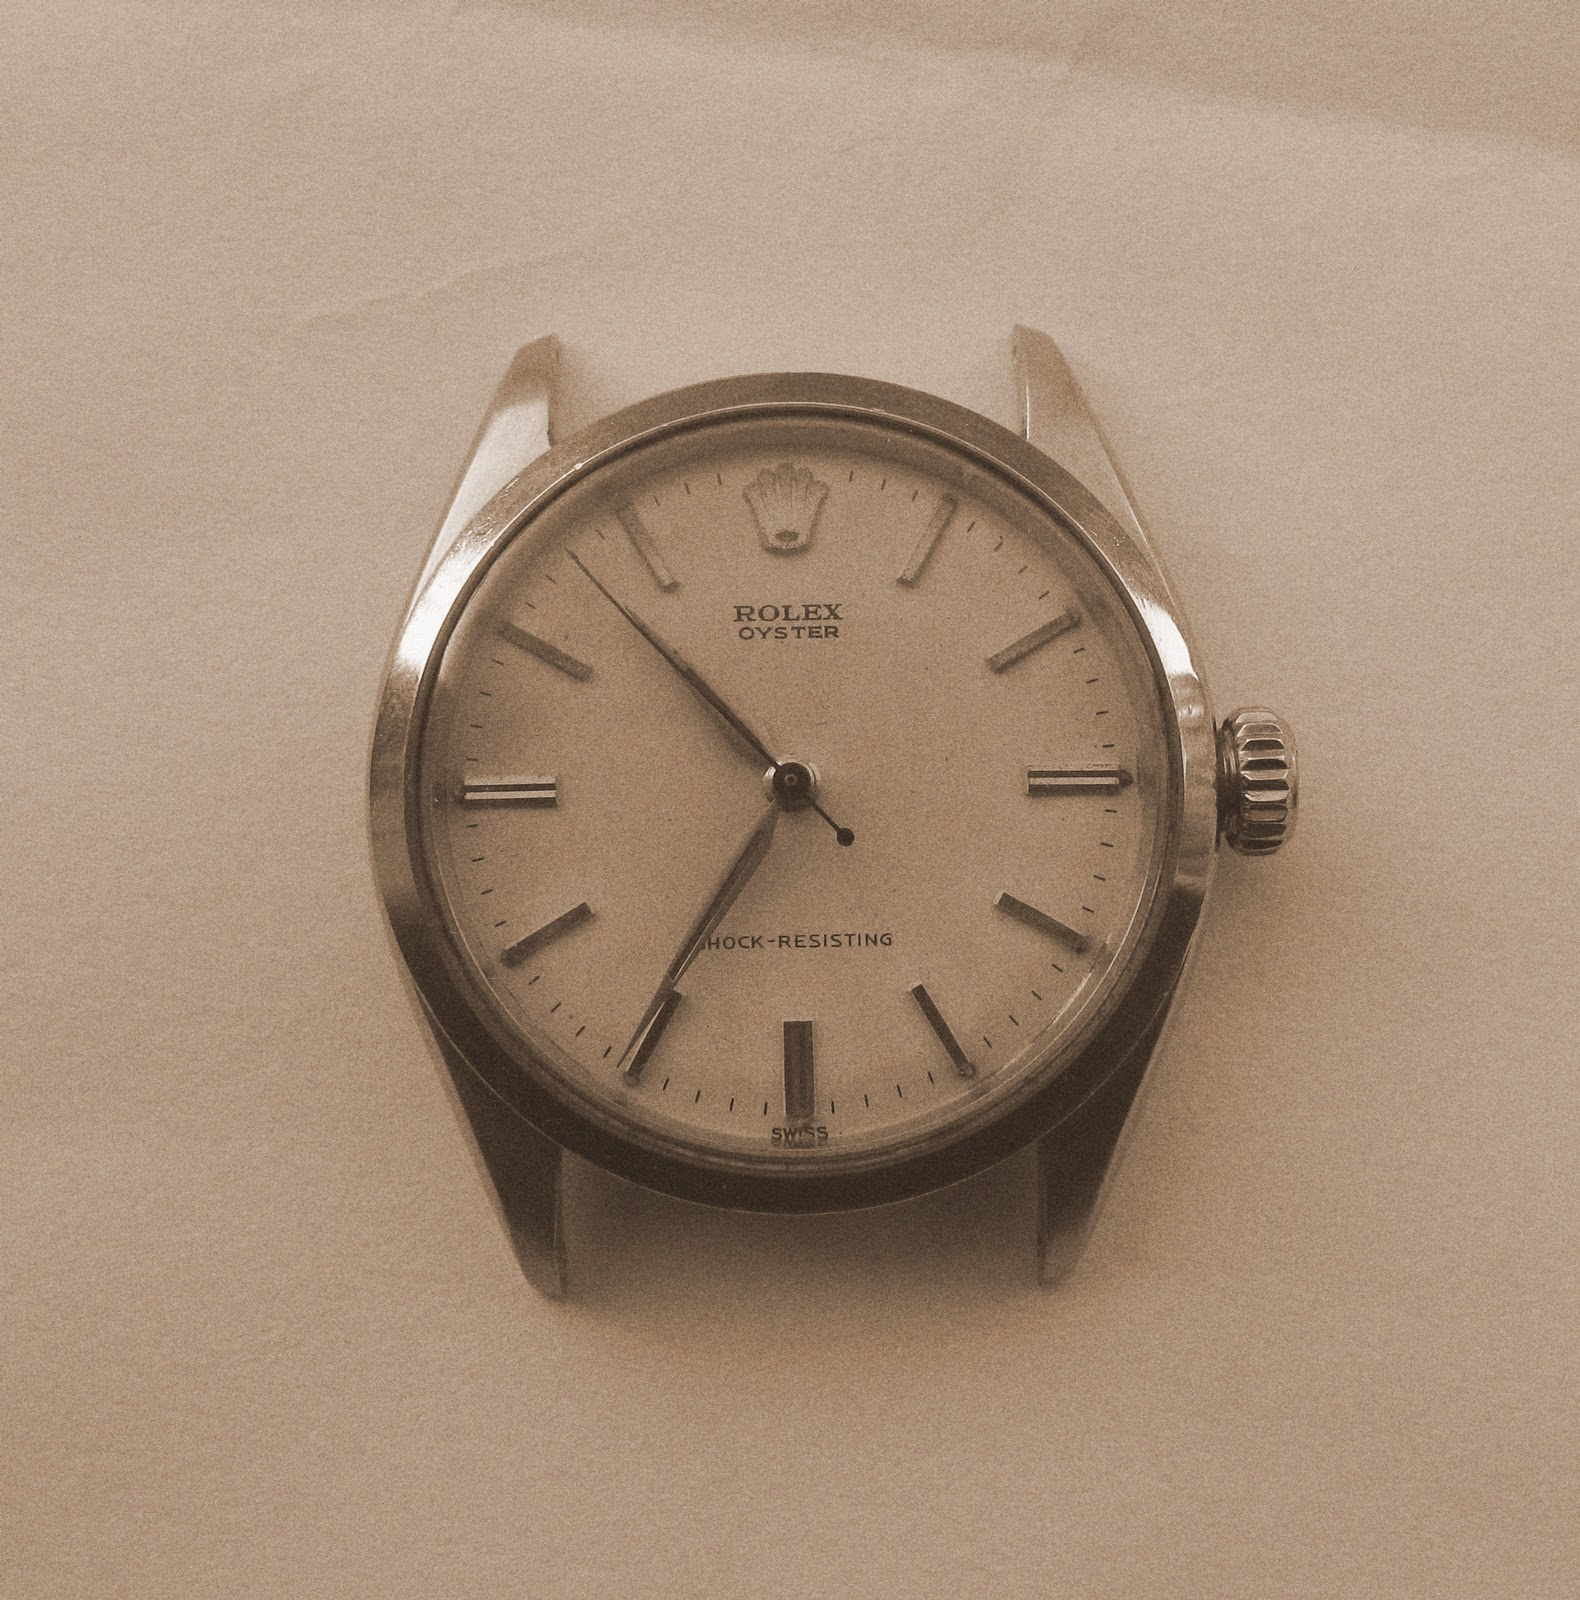 Andy B Vintage Watches 1957 Rolex Oyster Oyster Shock